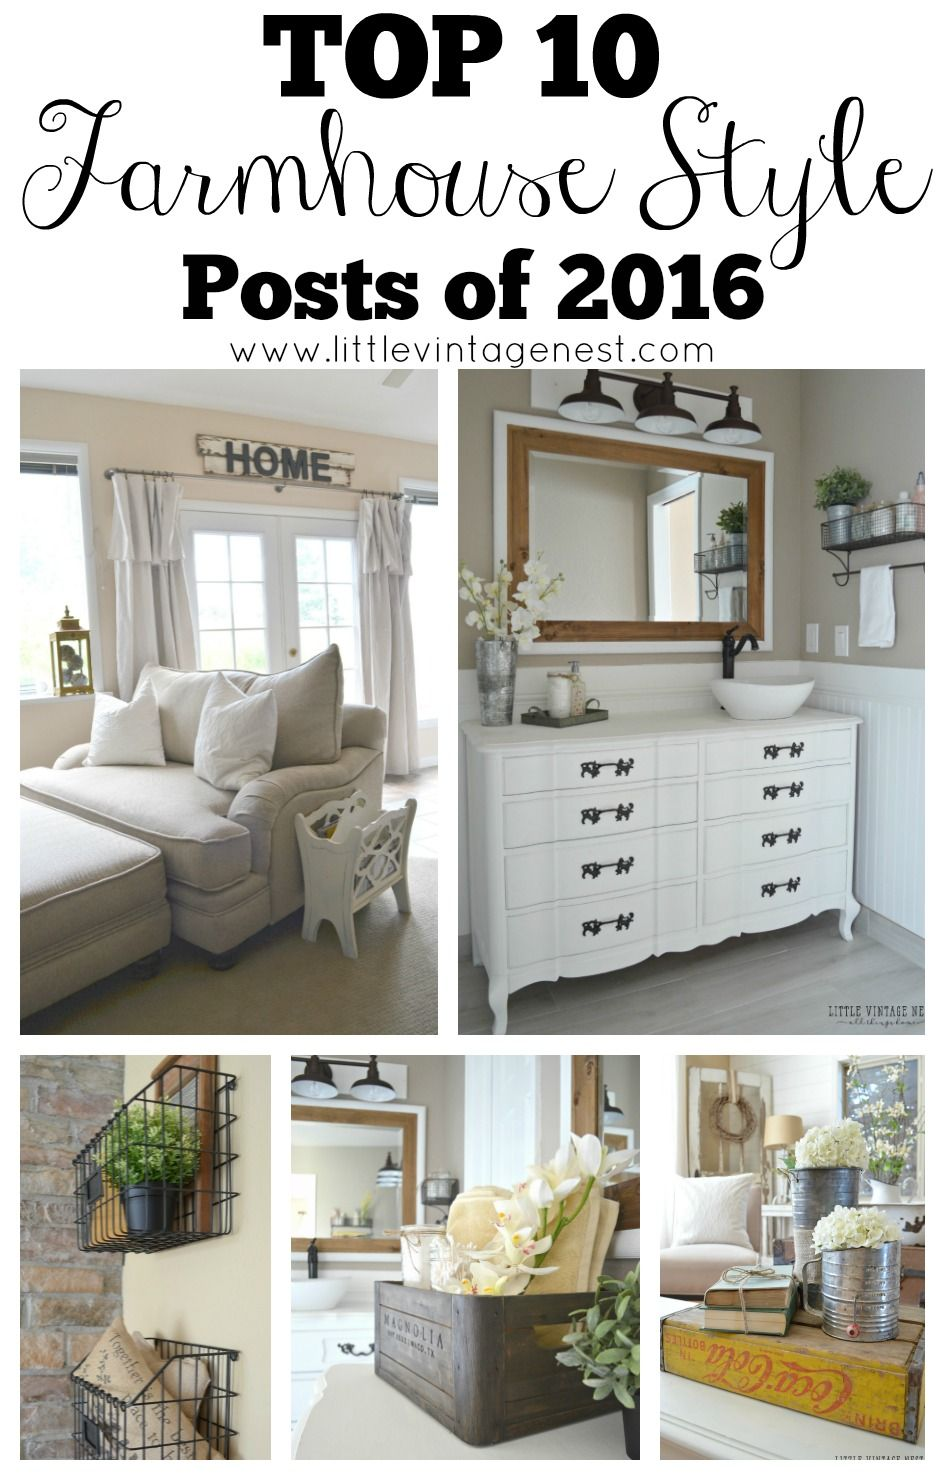 Top 10 Blog Posts of 2016 | Decorating Ideas | Farmhouse